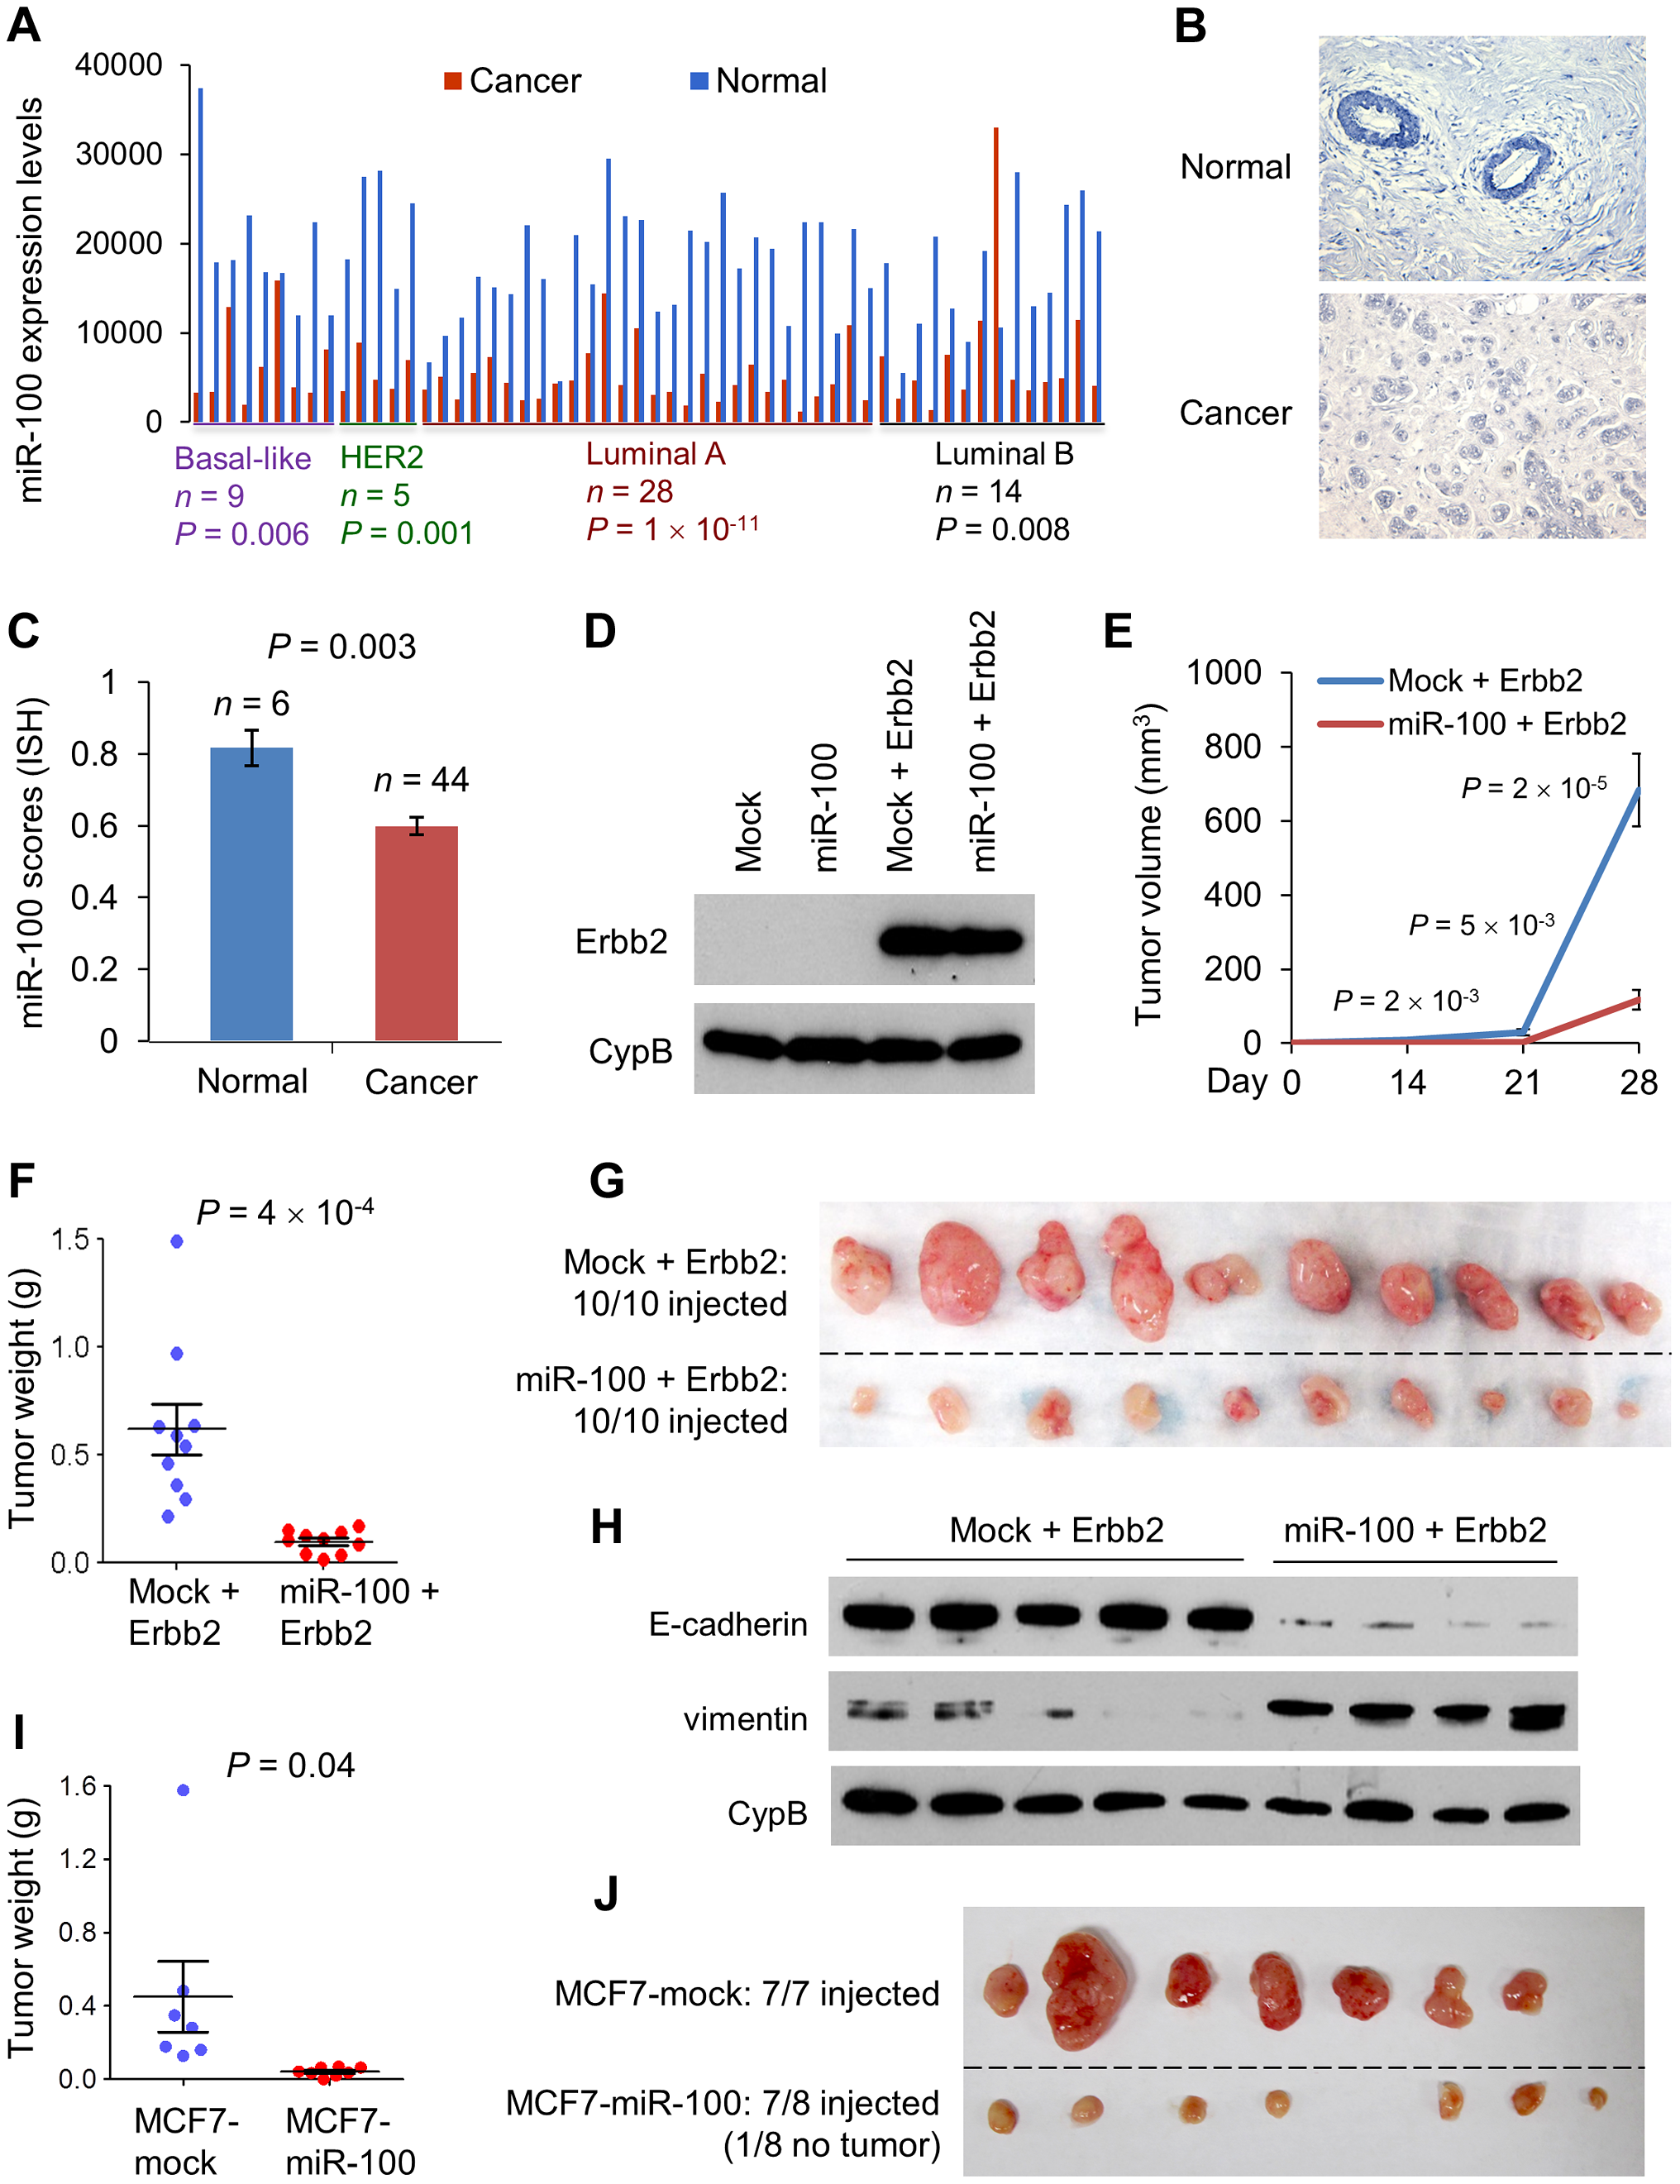 miR-100 inhibits tumorigenesis and is downregulated in human breast cancer.